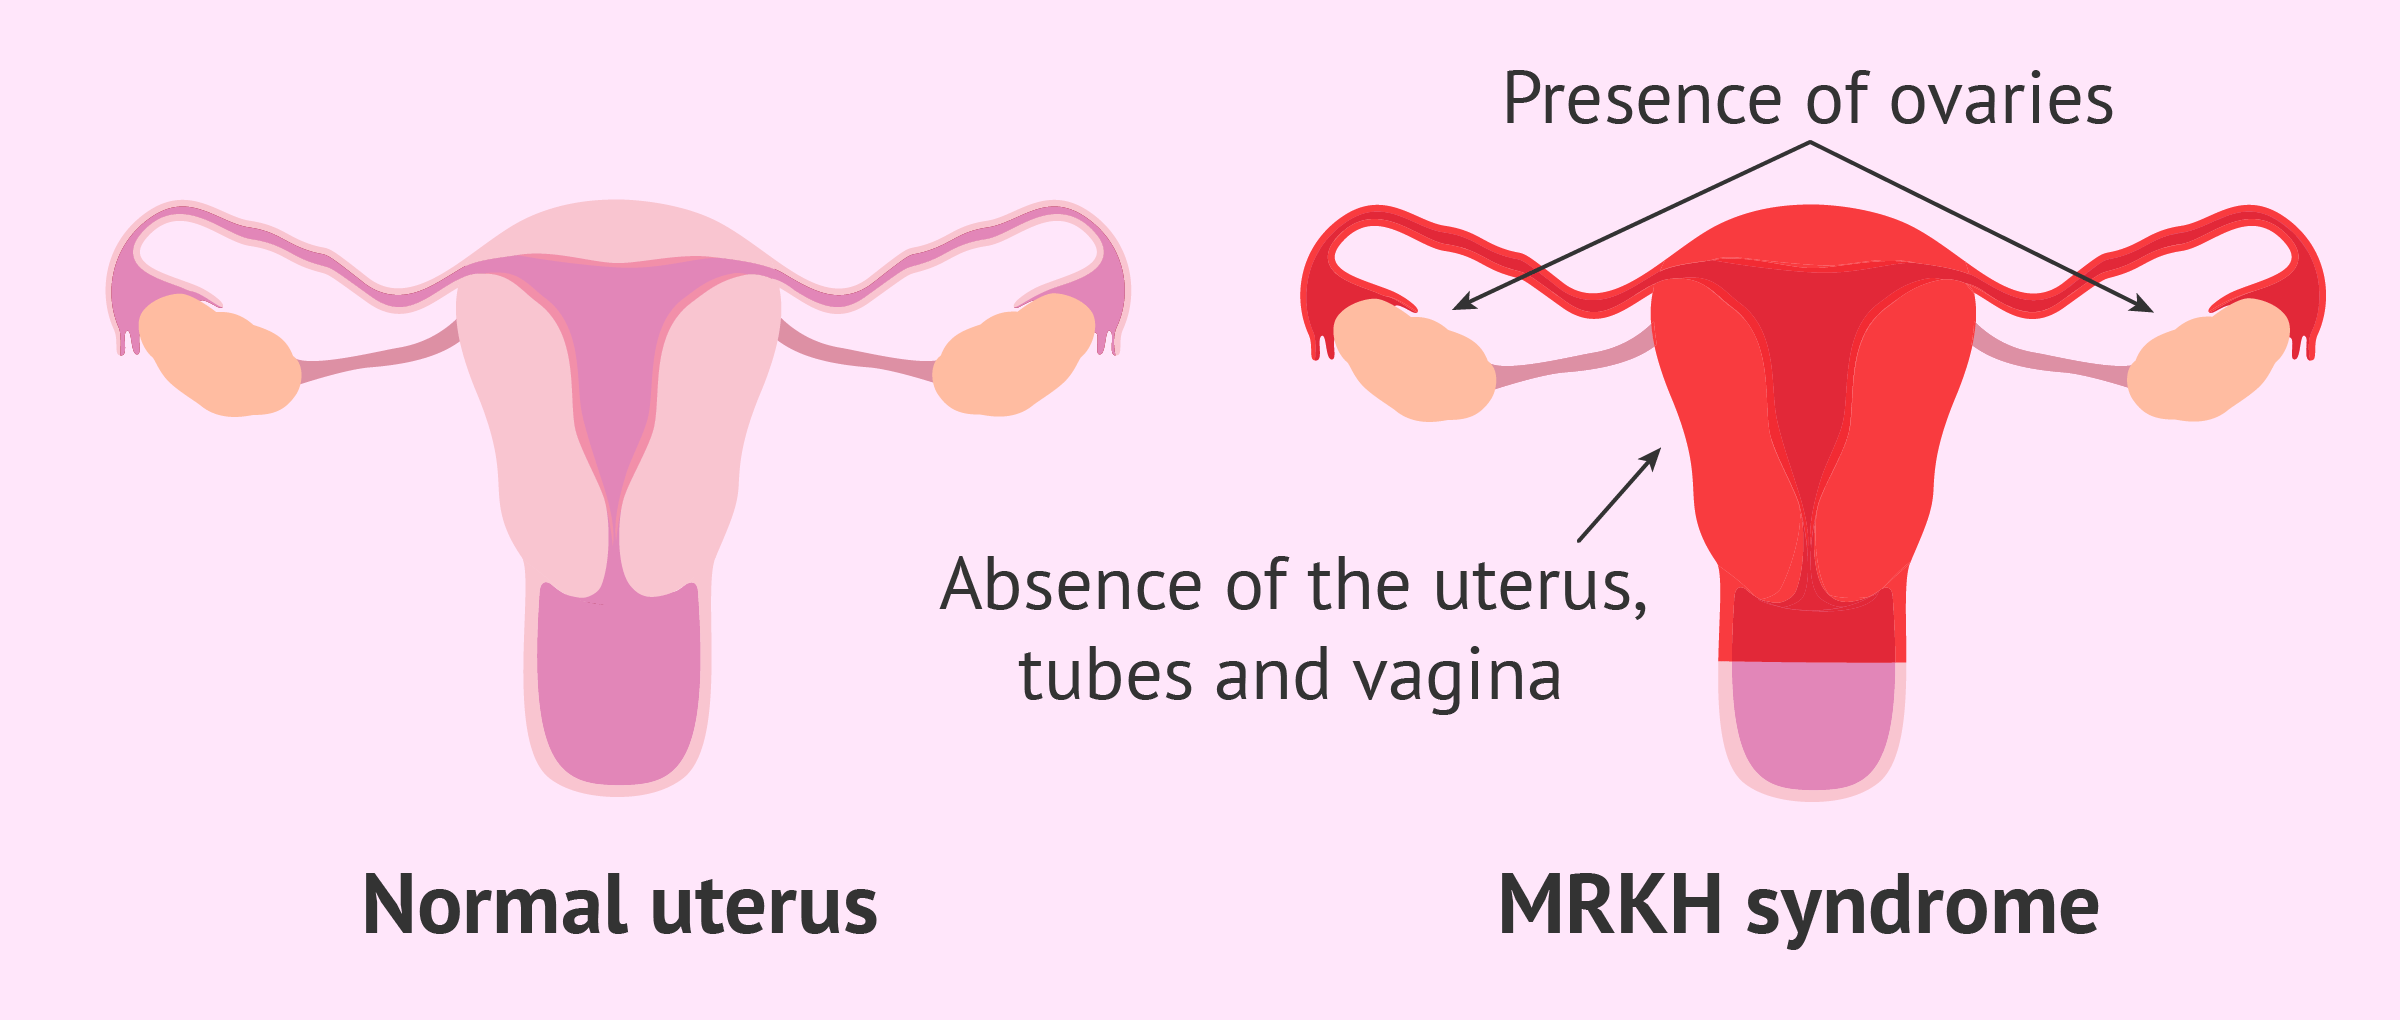 Comparison between normal uterus and MRKH syndrome